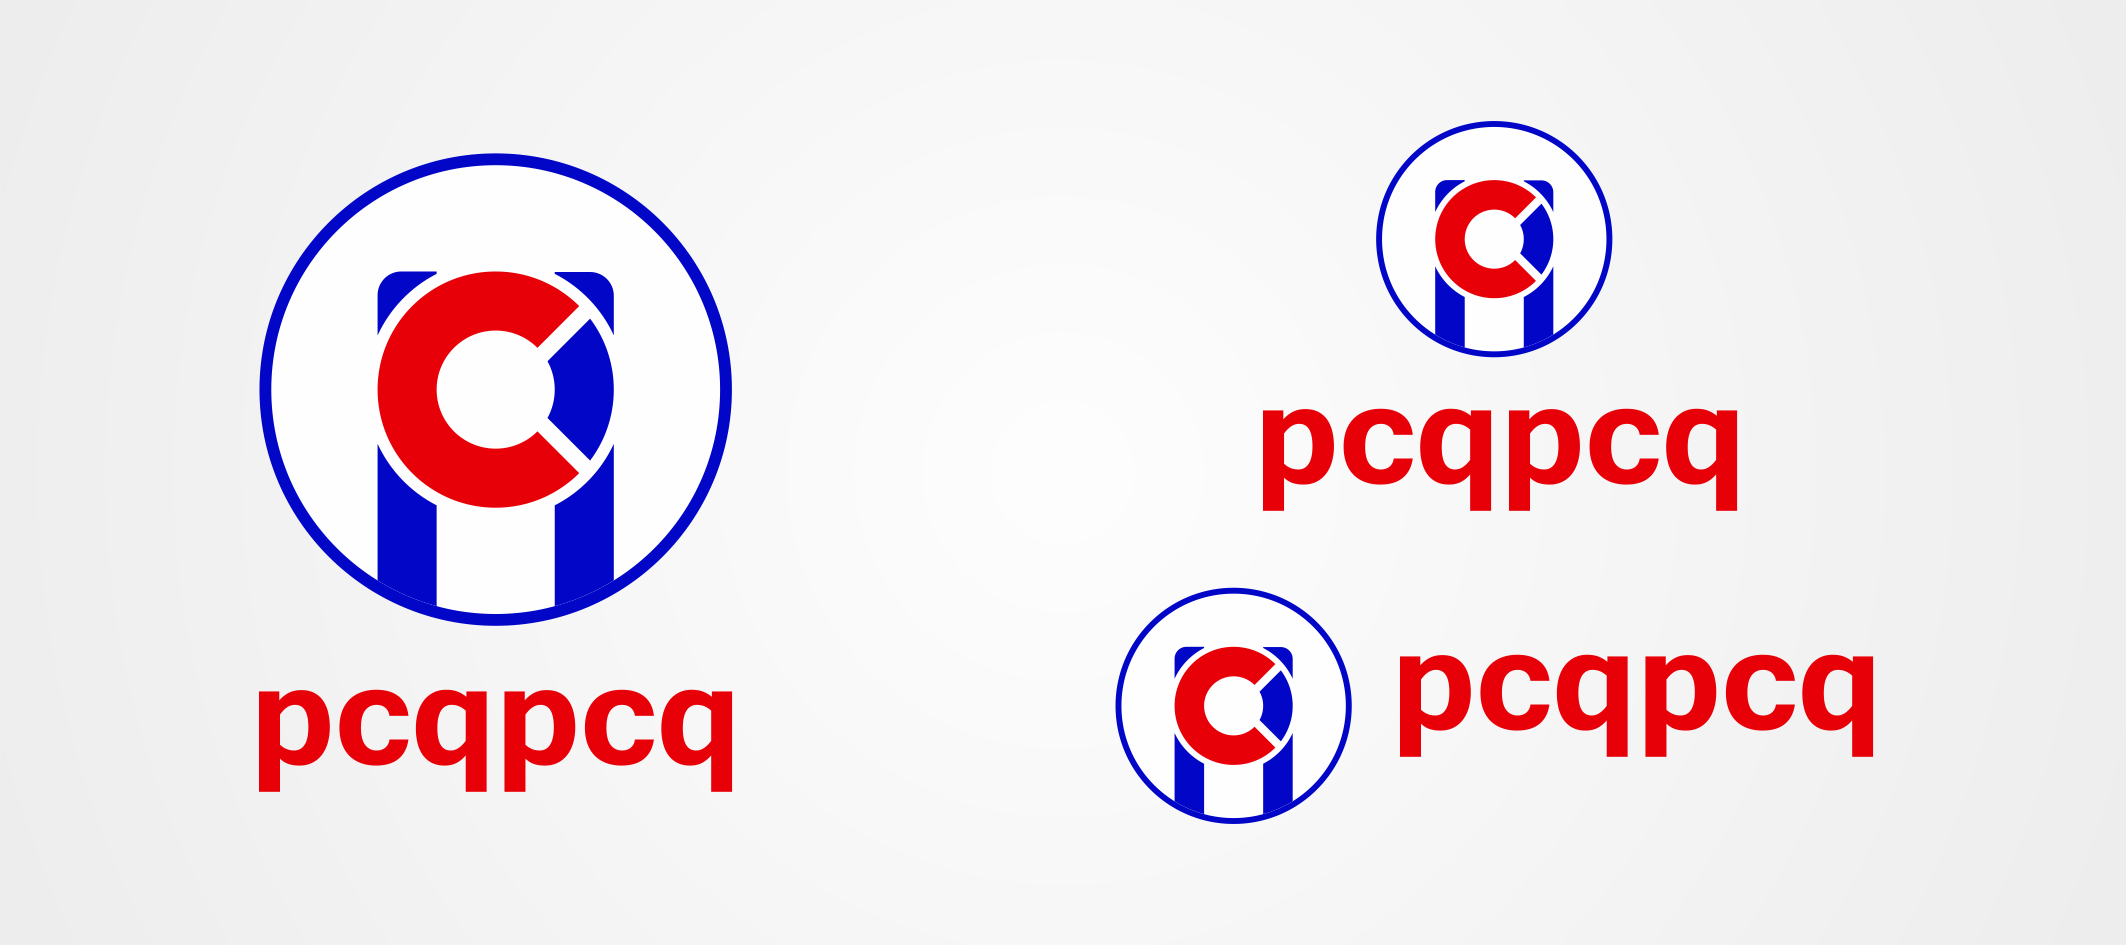 New logo for PCQPCQ · Issue #270 · pcqpcq/open-source